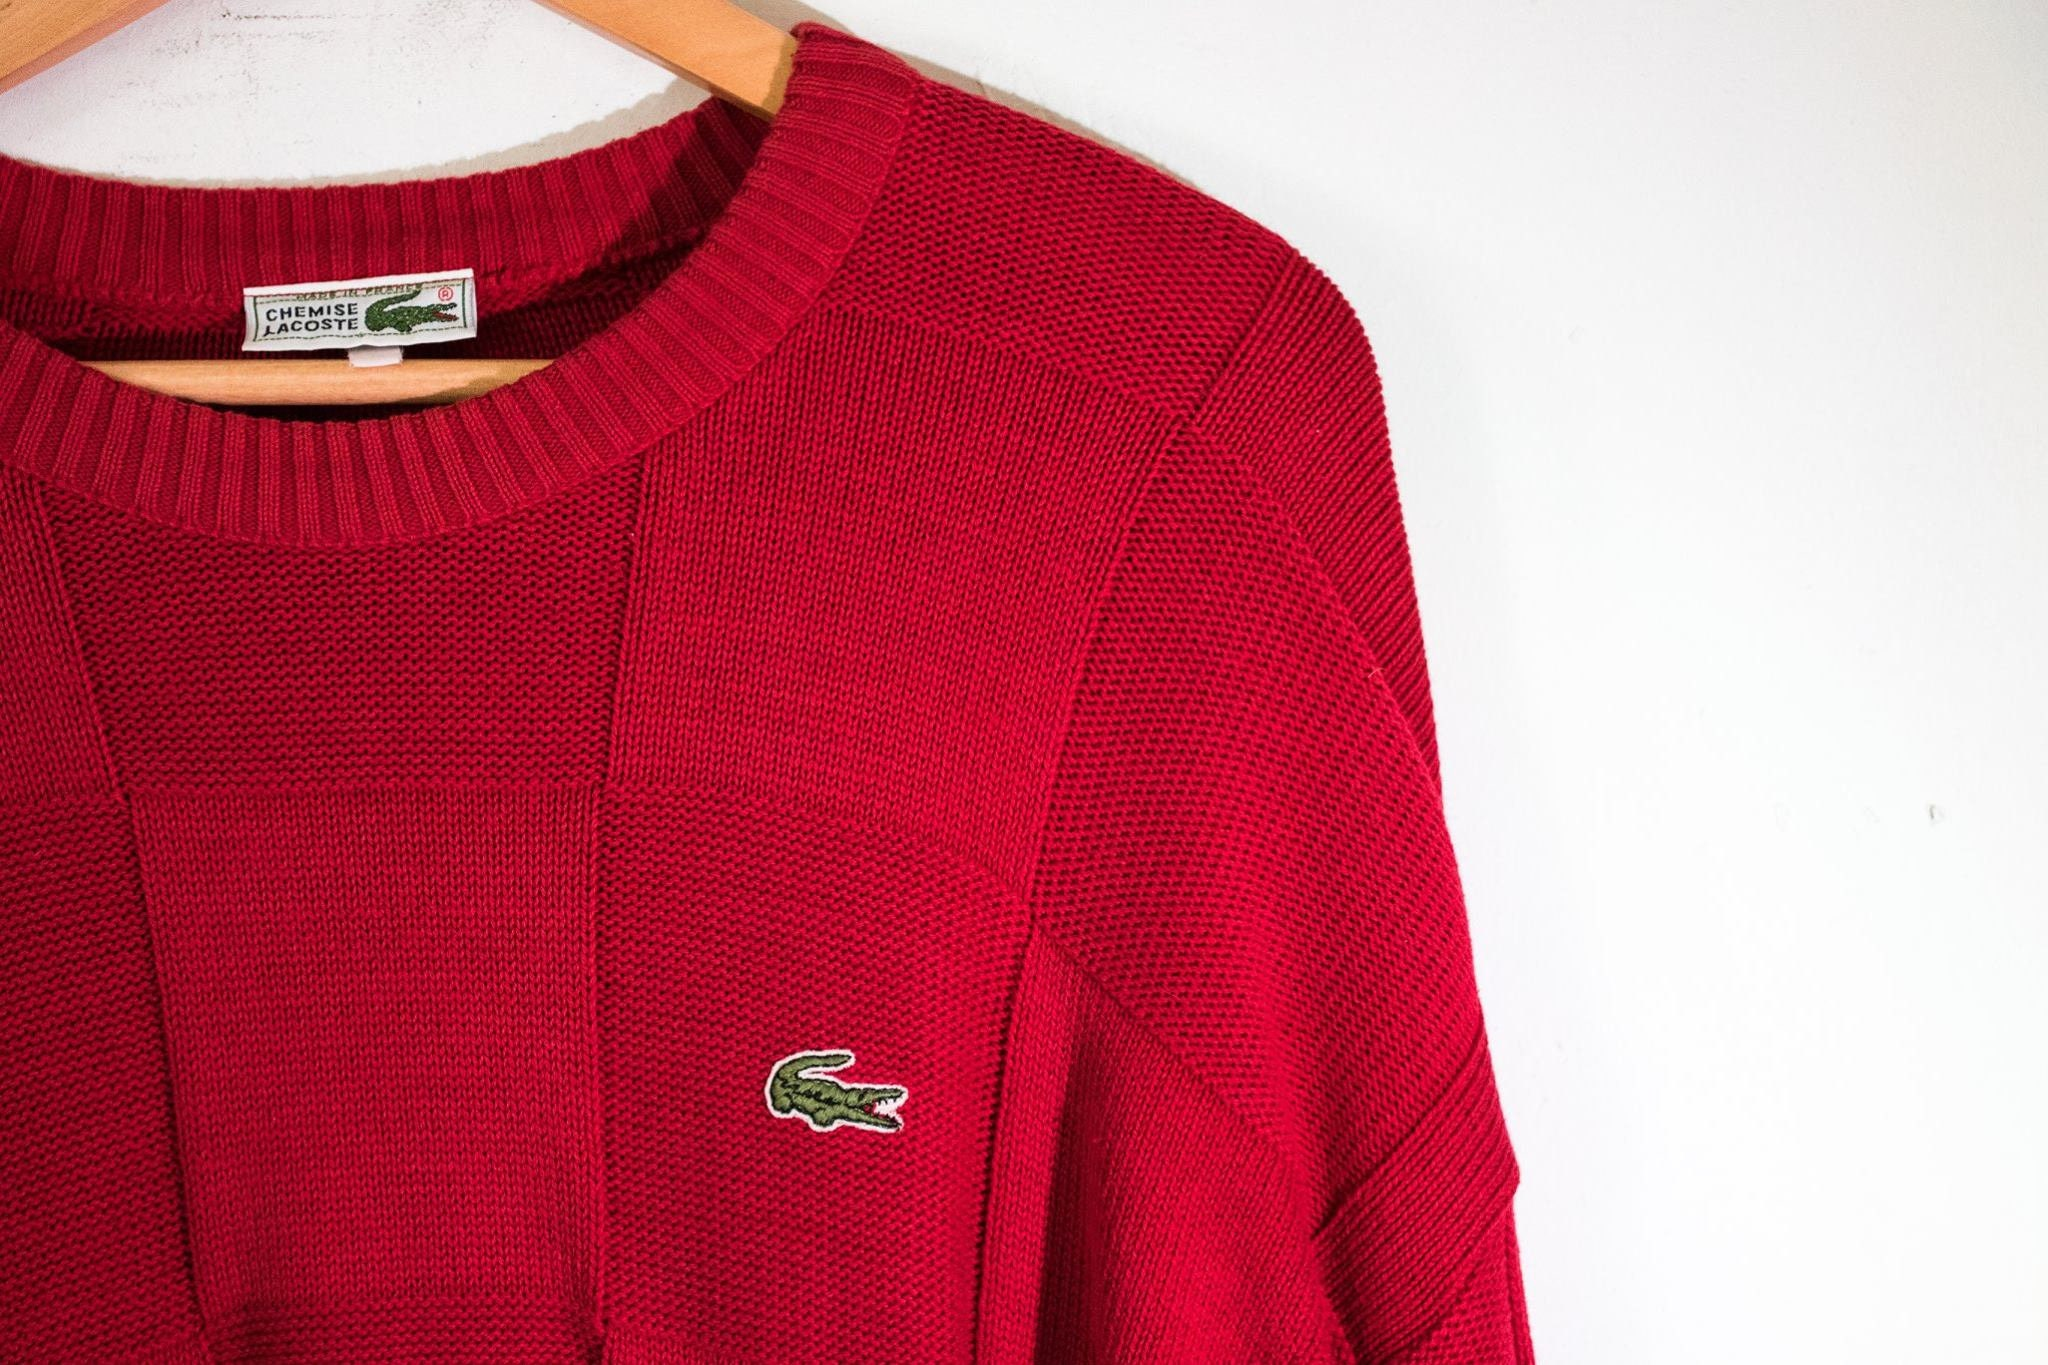 Chemise Lacoste knit MADE IN FRANCE circa 1980s 4EEgiO